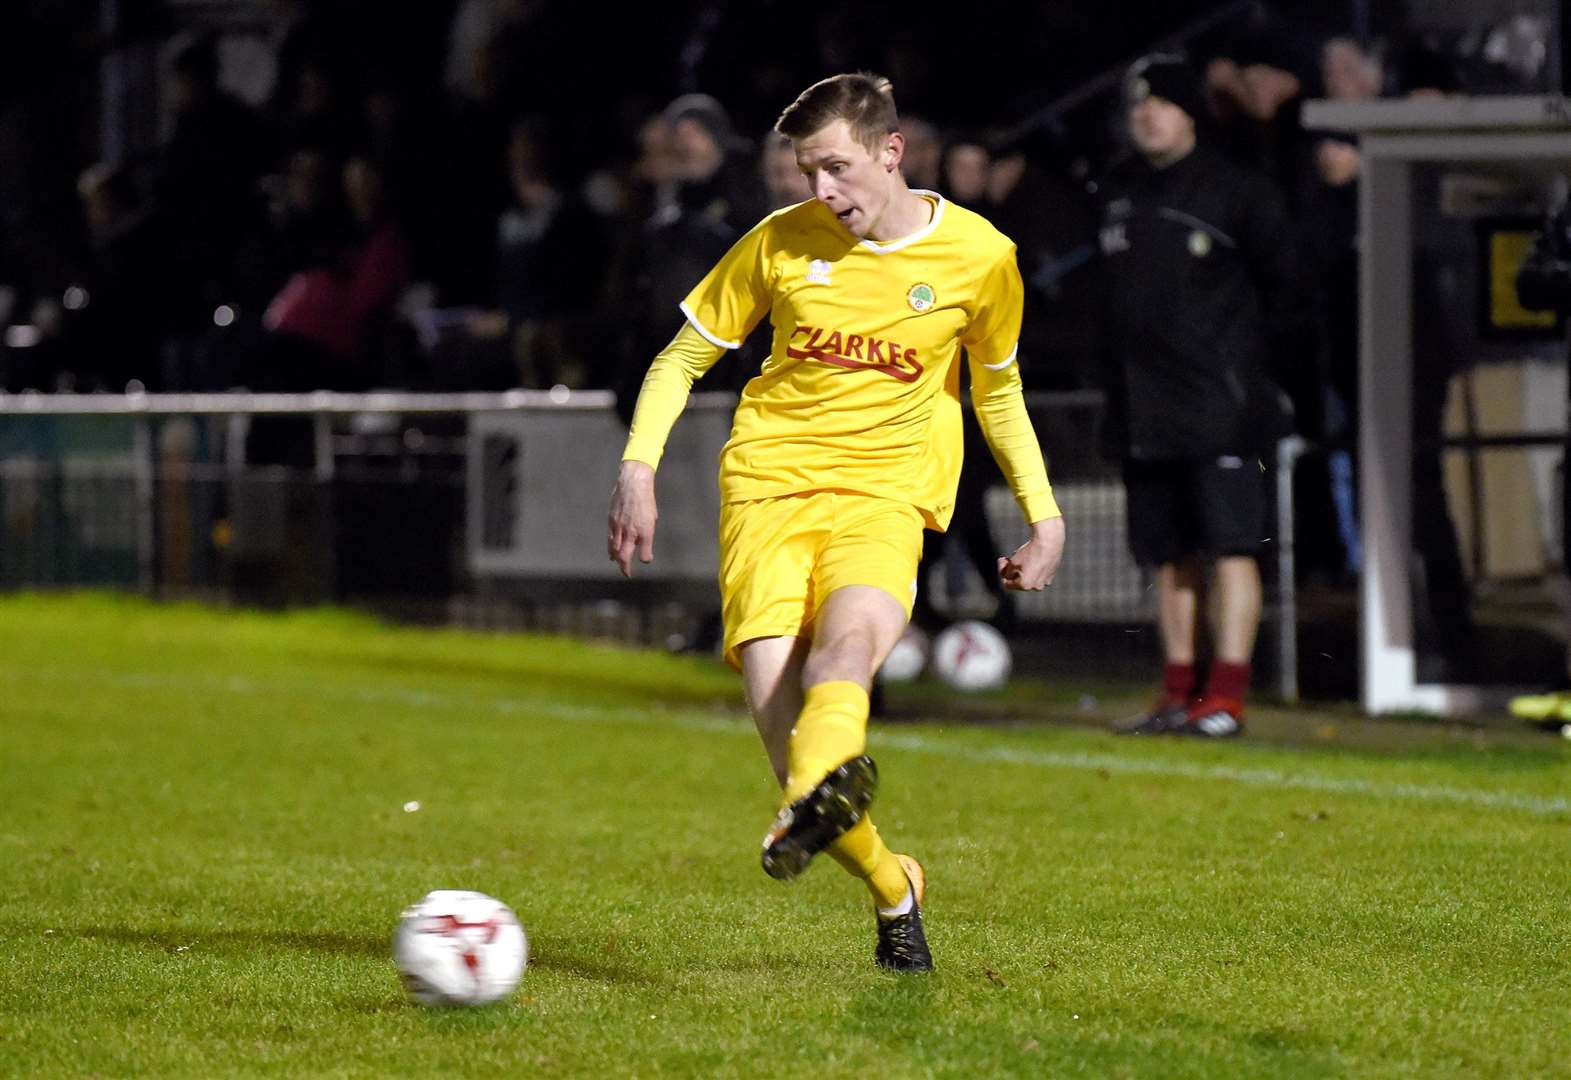 Walsham's loss of focus gets punished